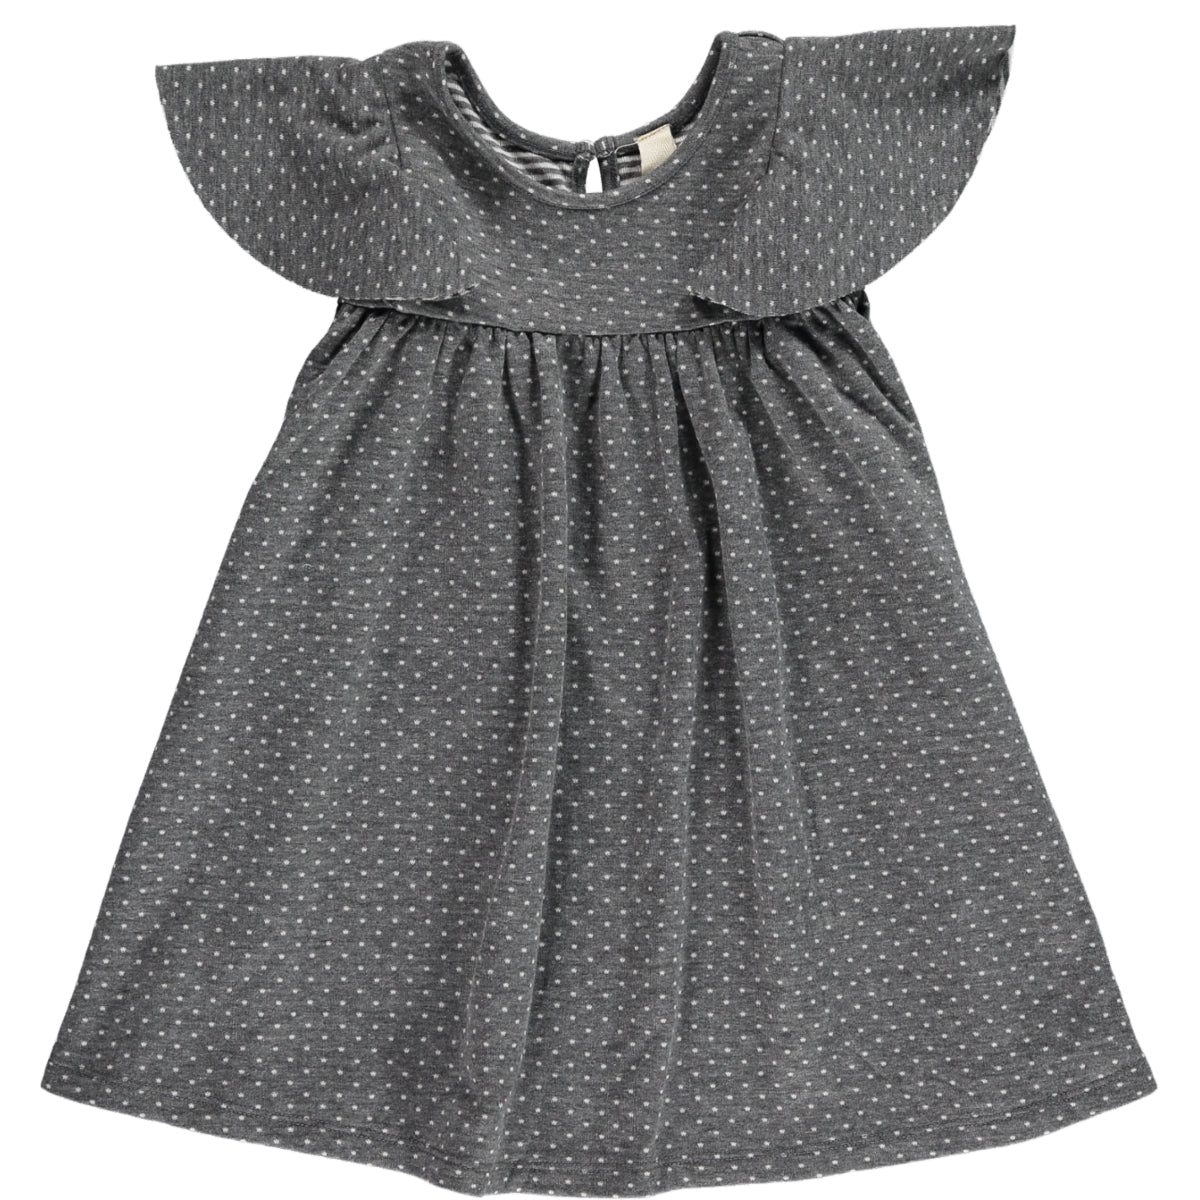 lottie dress in charcoal